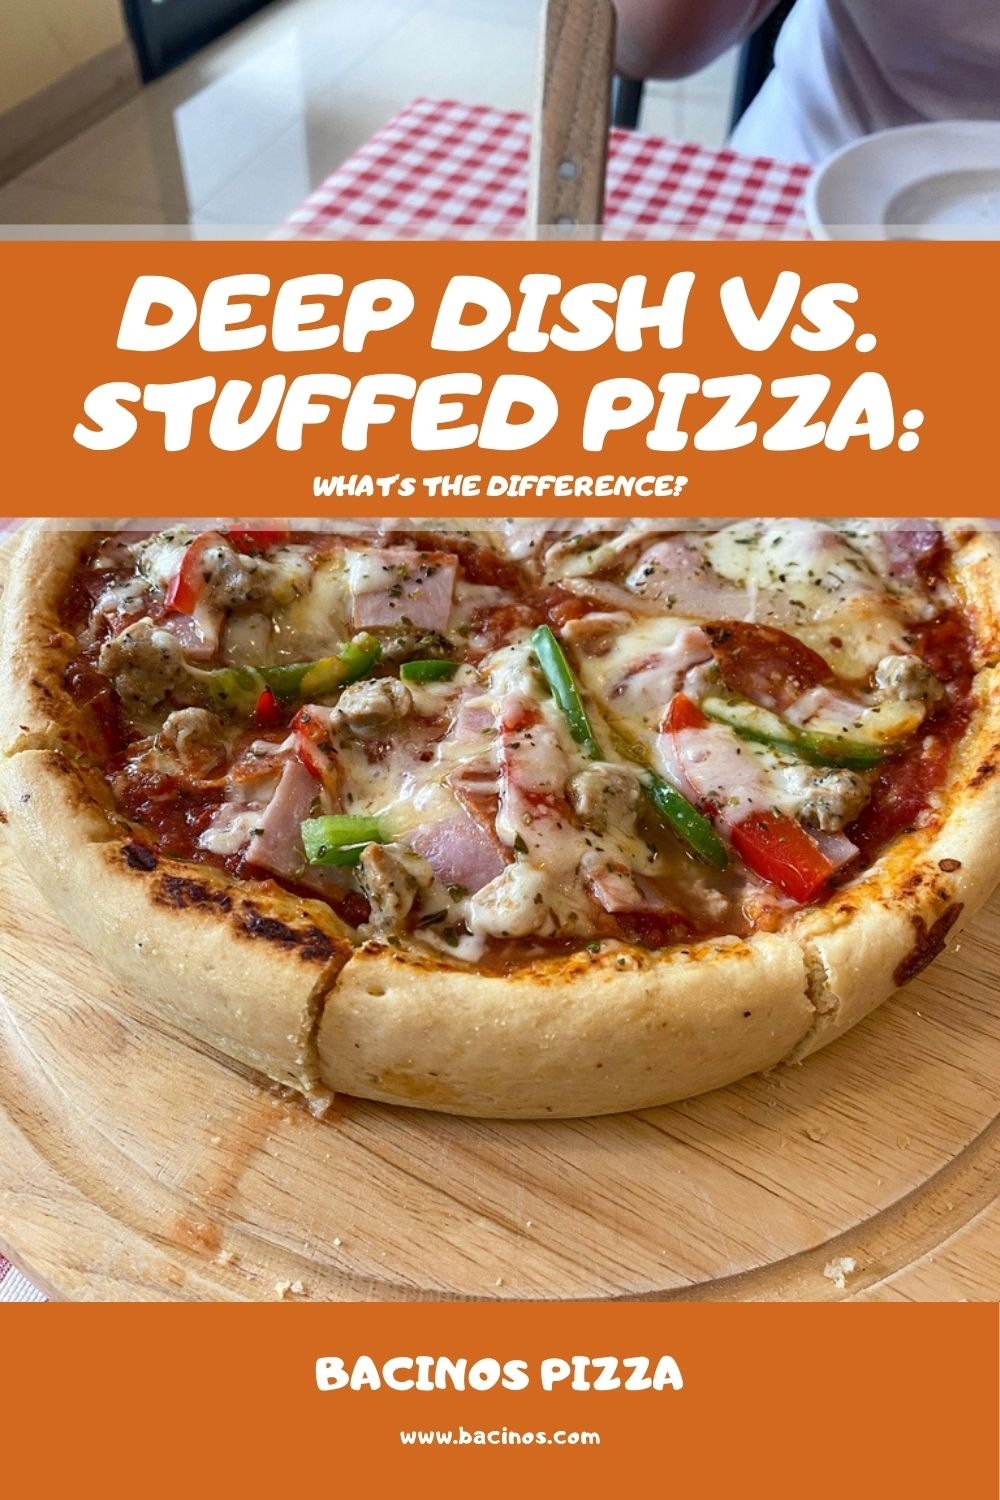 Deep Dish vs. Stuffed Pizza What's the Difference 2